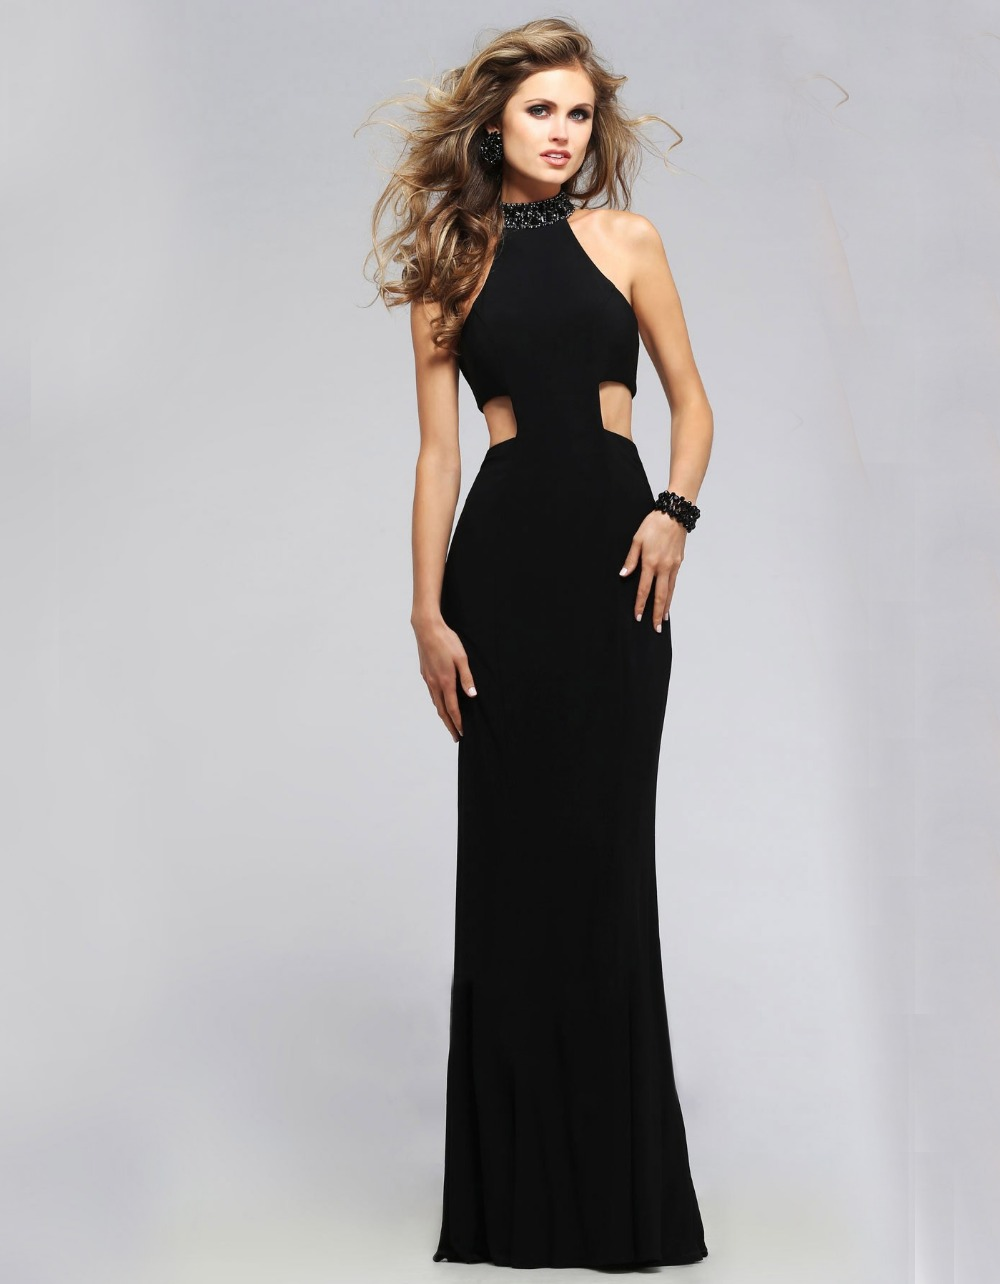 Black Masquerade Gothic Ball Gowns More details salestopp1se.gq taking a dress or top that you know fits and measure the bust and waist. Use a tape measure or string and measure yourself using the sizing diagram as a guide. This will give you a starting point to compare.